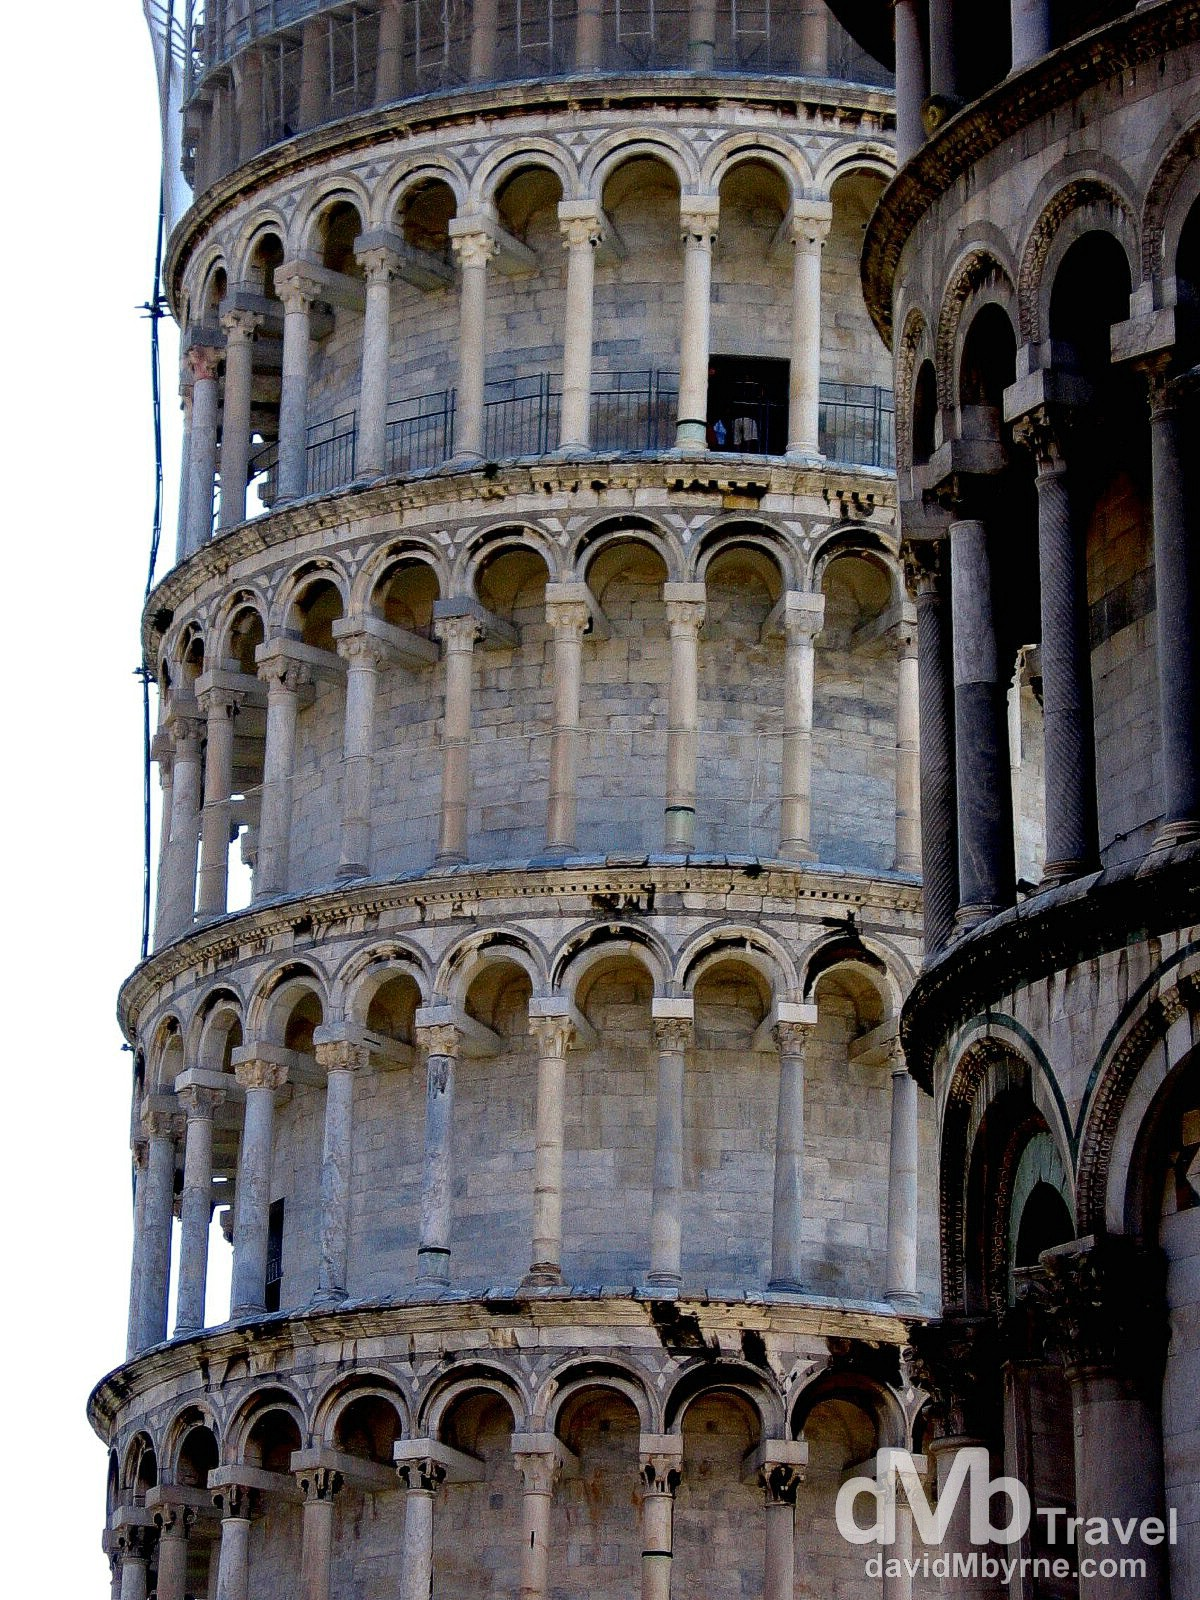 The famous leaning tower in Campo dei Miracoli (Field of Miracles), Pisa, Tuscany, Italy. August 31st, 2007.